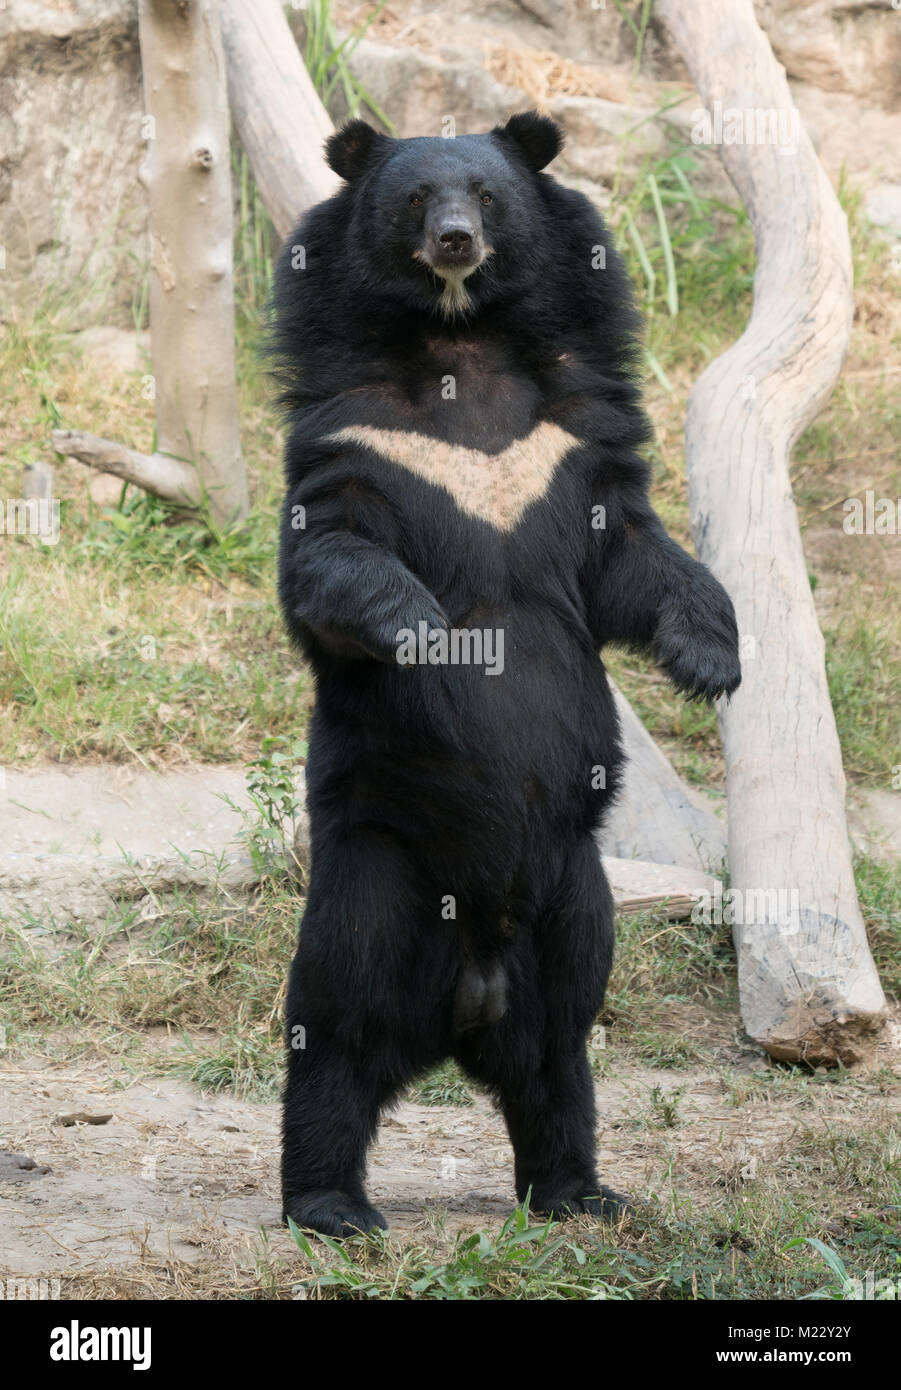 asiatic black bear in zoo - Stock Image